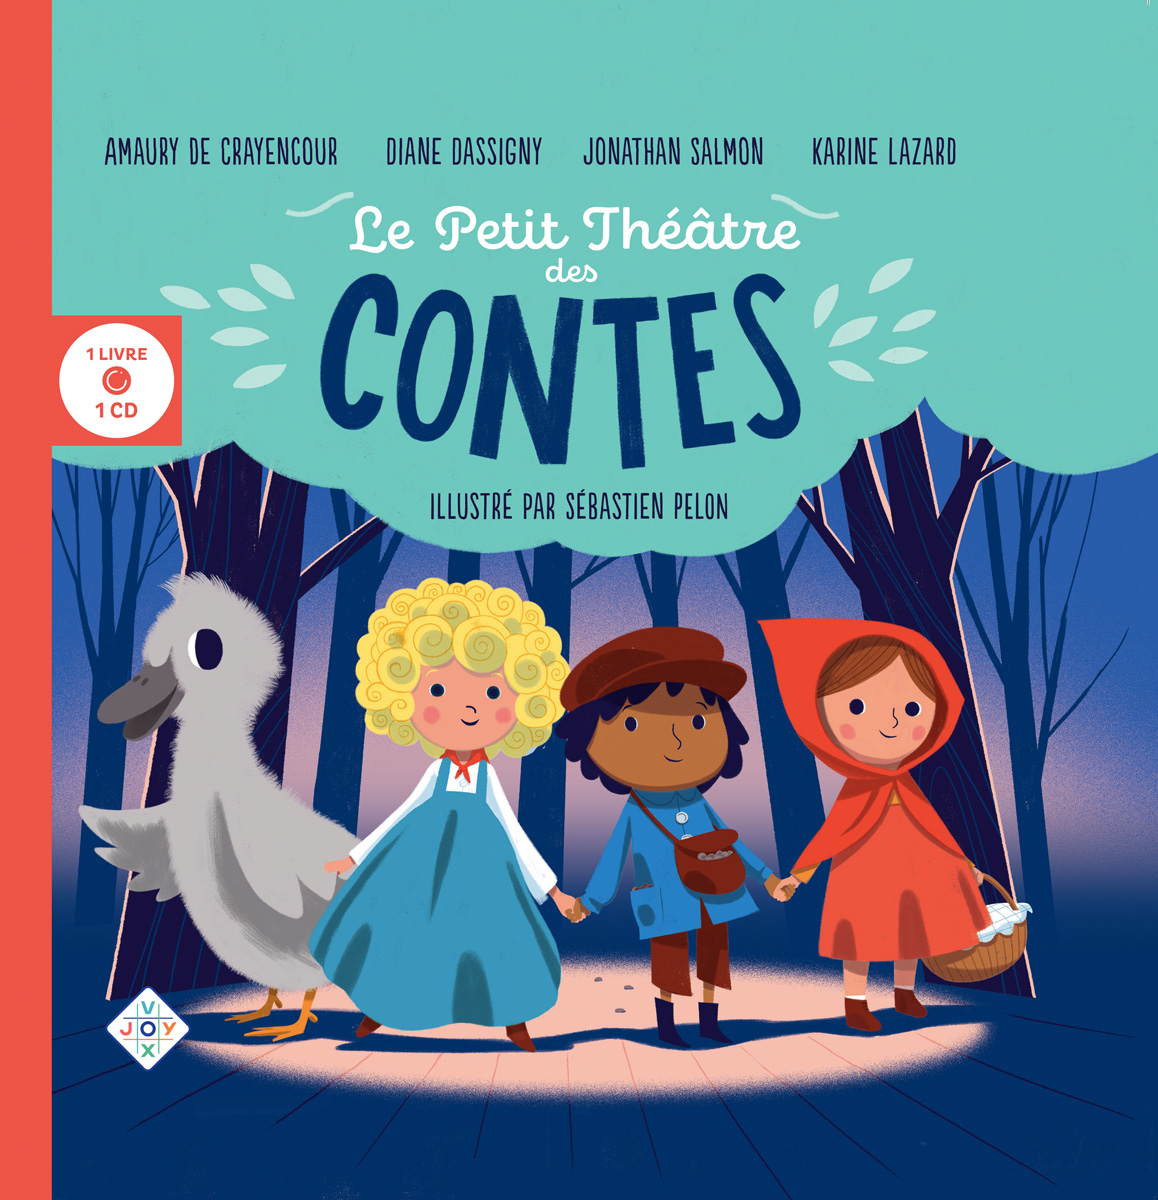 LE PETIT THEATRE DES CONTES / THE LITTLE THEATRE OF TALES